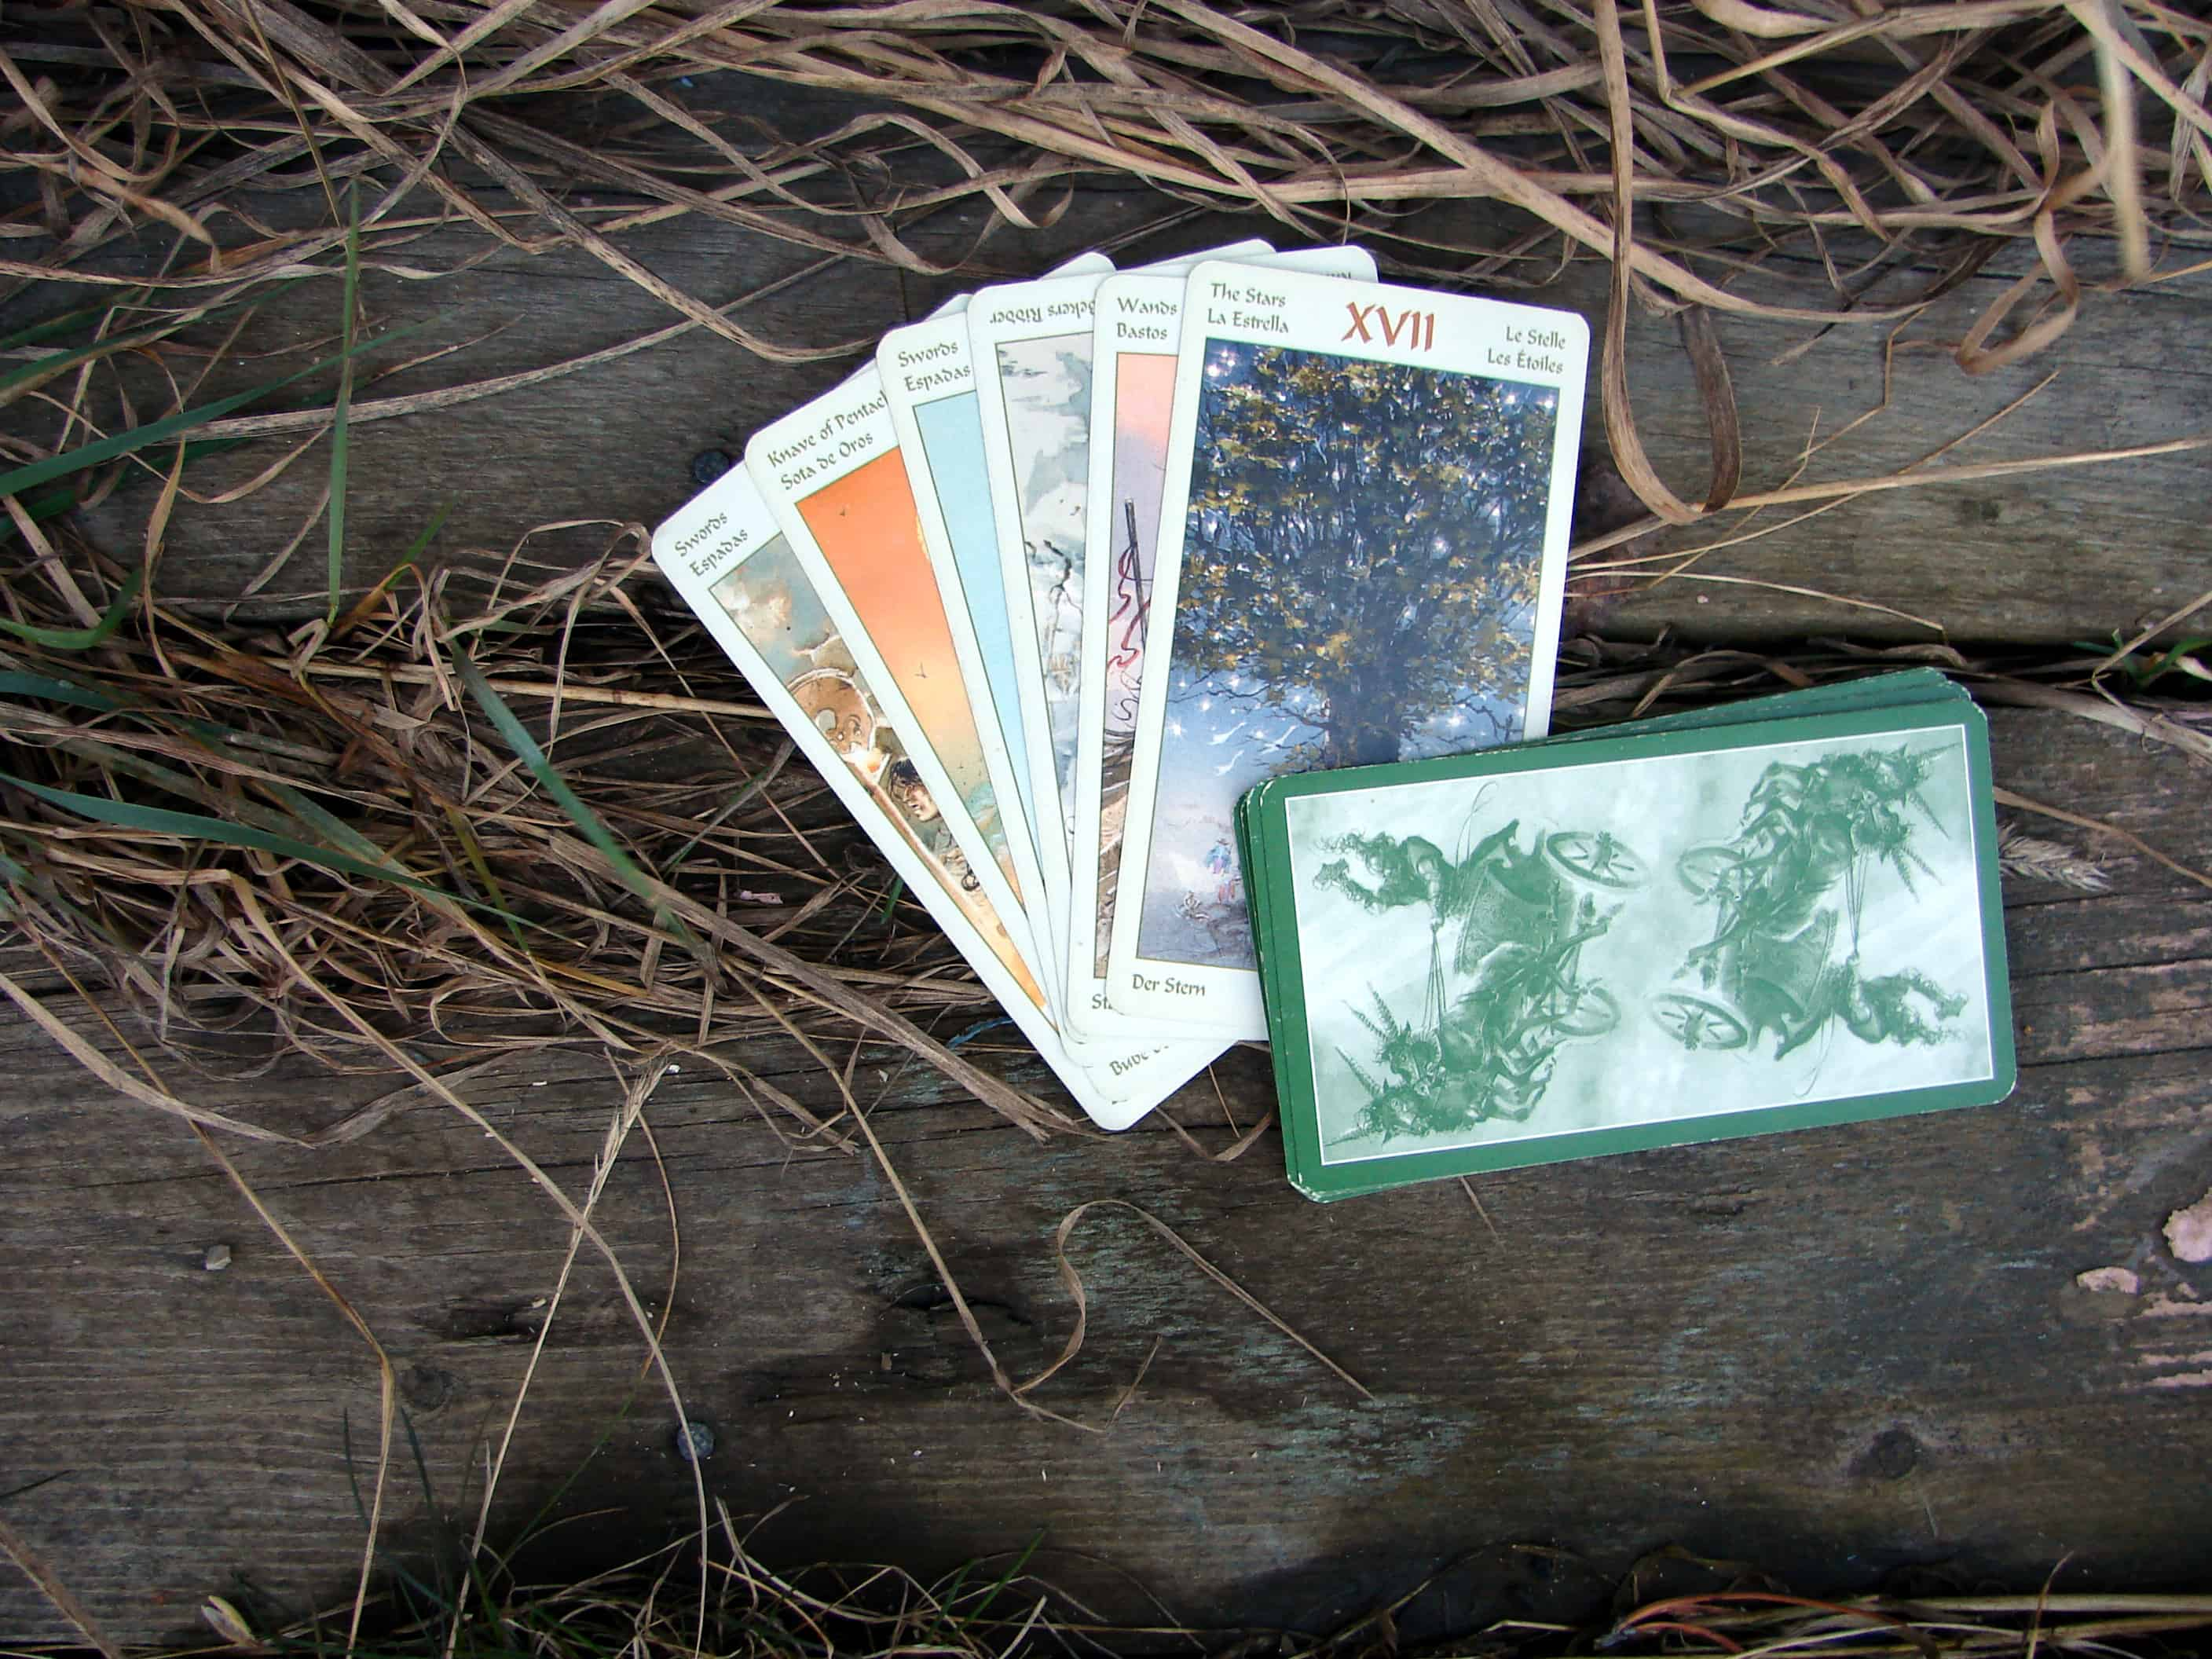 A Tarot reading on needed guidance